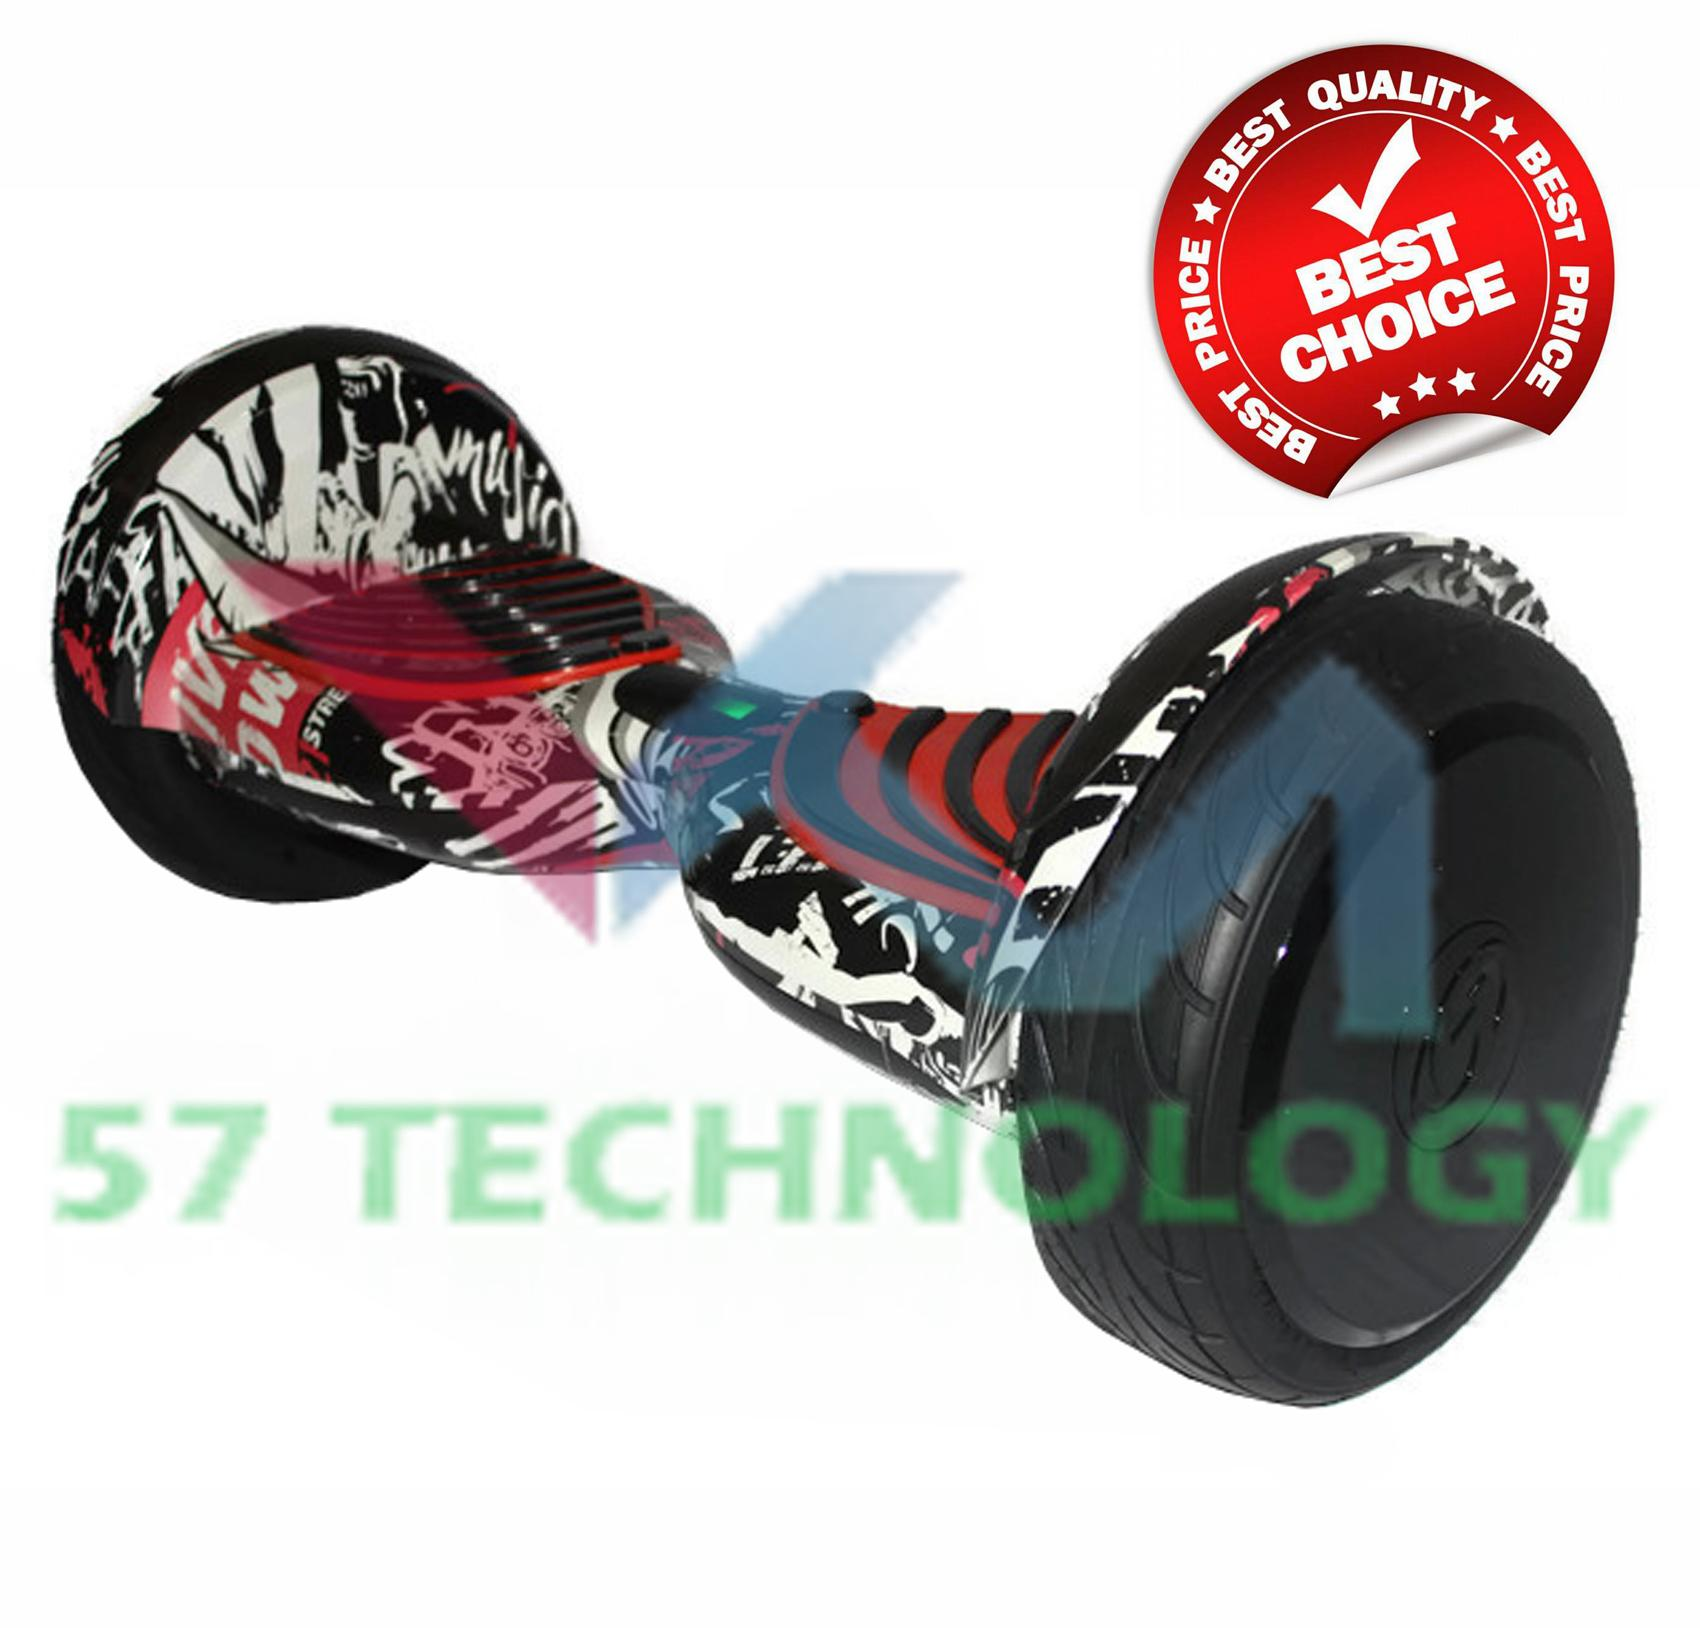 Smart Balance Wheels 10 Inch (black Graffiti) By 57 Technology.